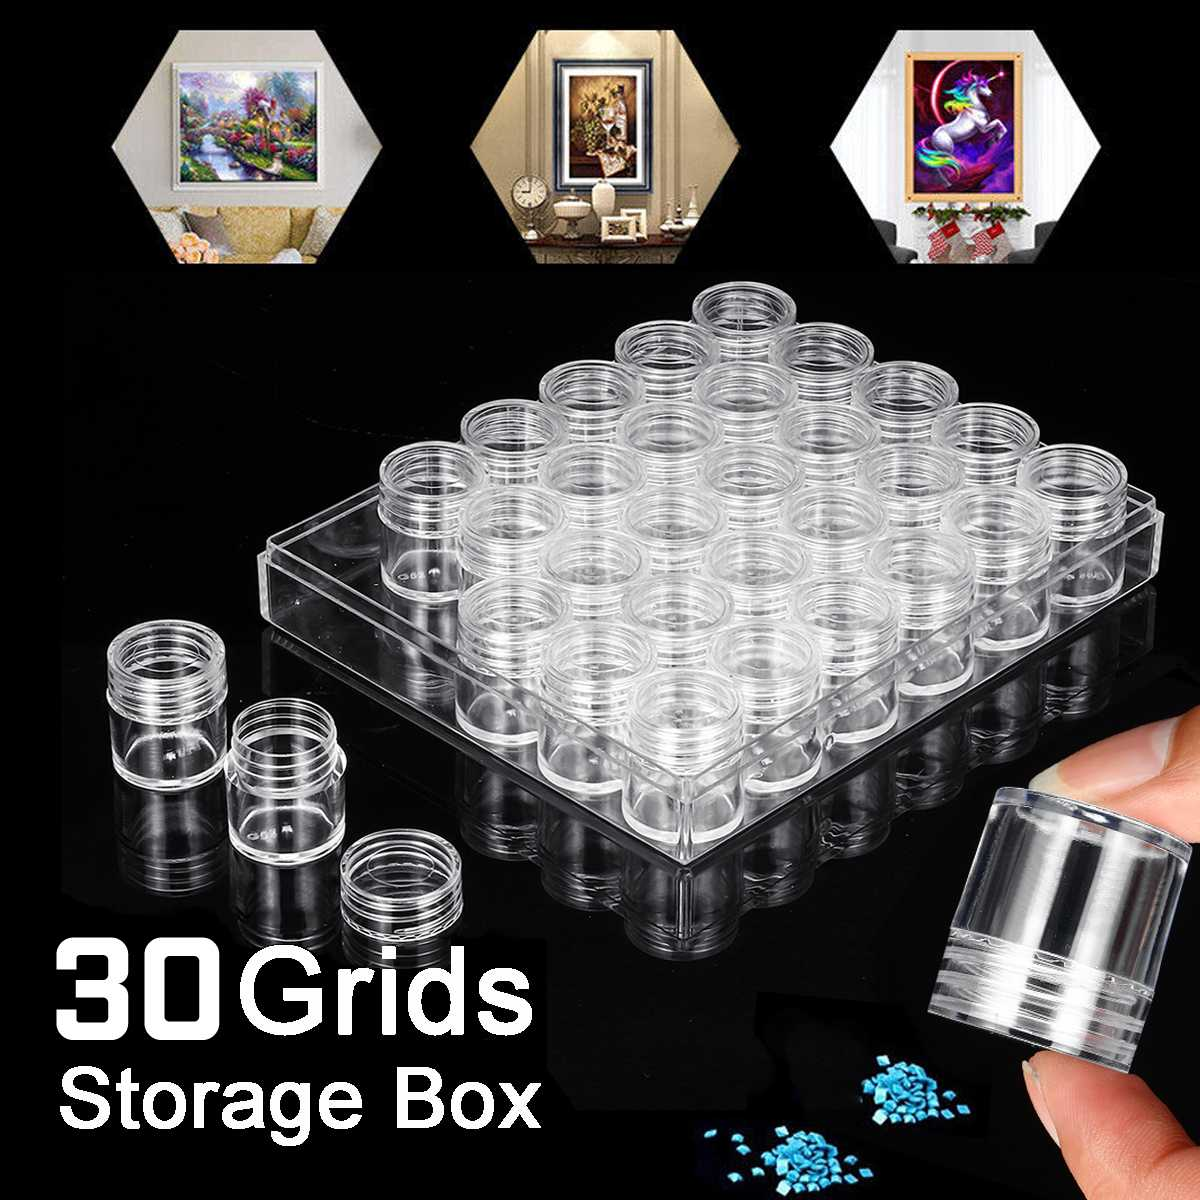 30 Grids Slots Diamond Embroidery Storage Box Bead Storage Bottle Multifunctional Tools Kits Diamond Painting Accessories Cases30 Grids Slots Diamond Embroidery Storage Box Bead Storage Bottle Multifunctional Tools Kits Diamond Painting Accessories Cases